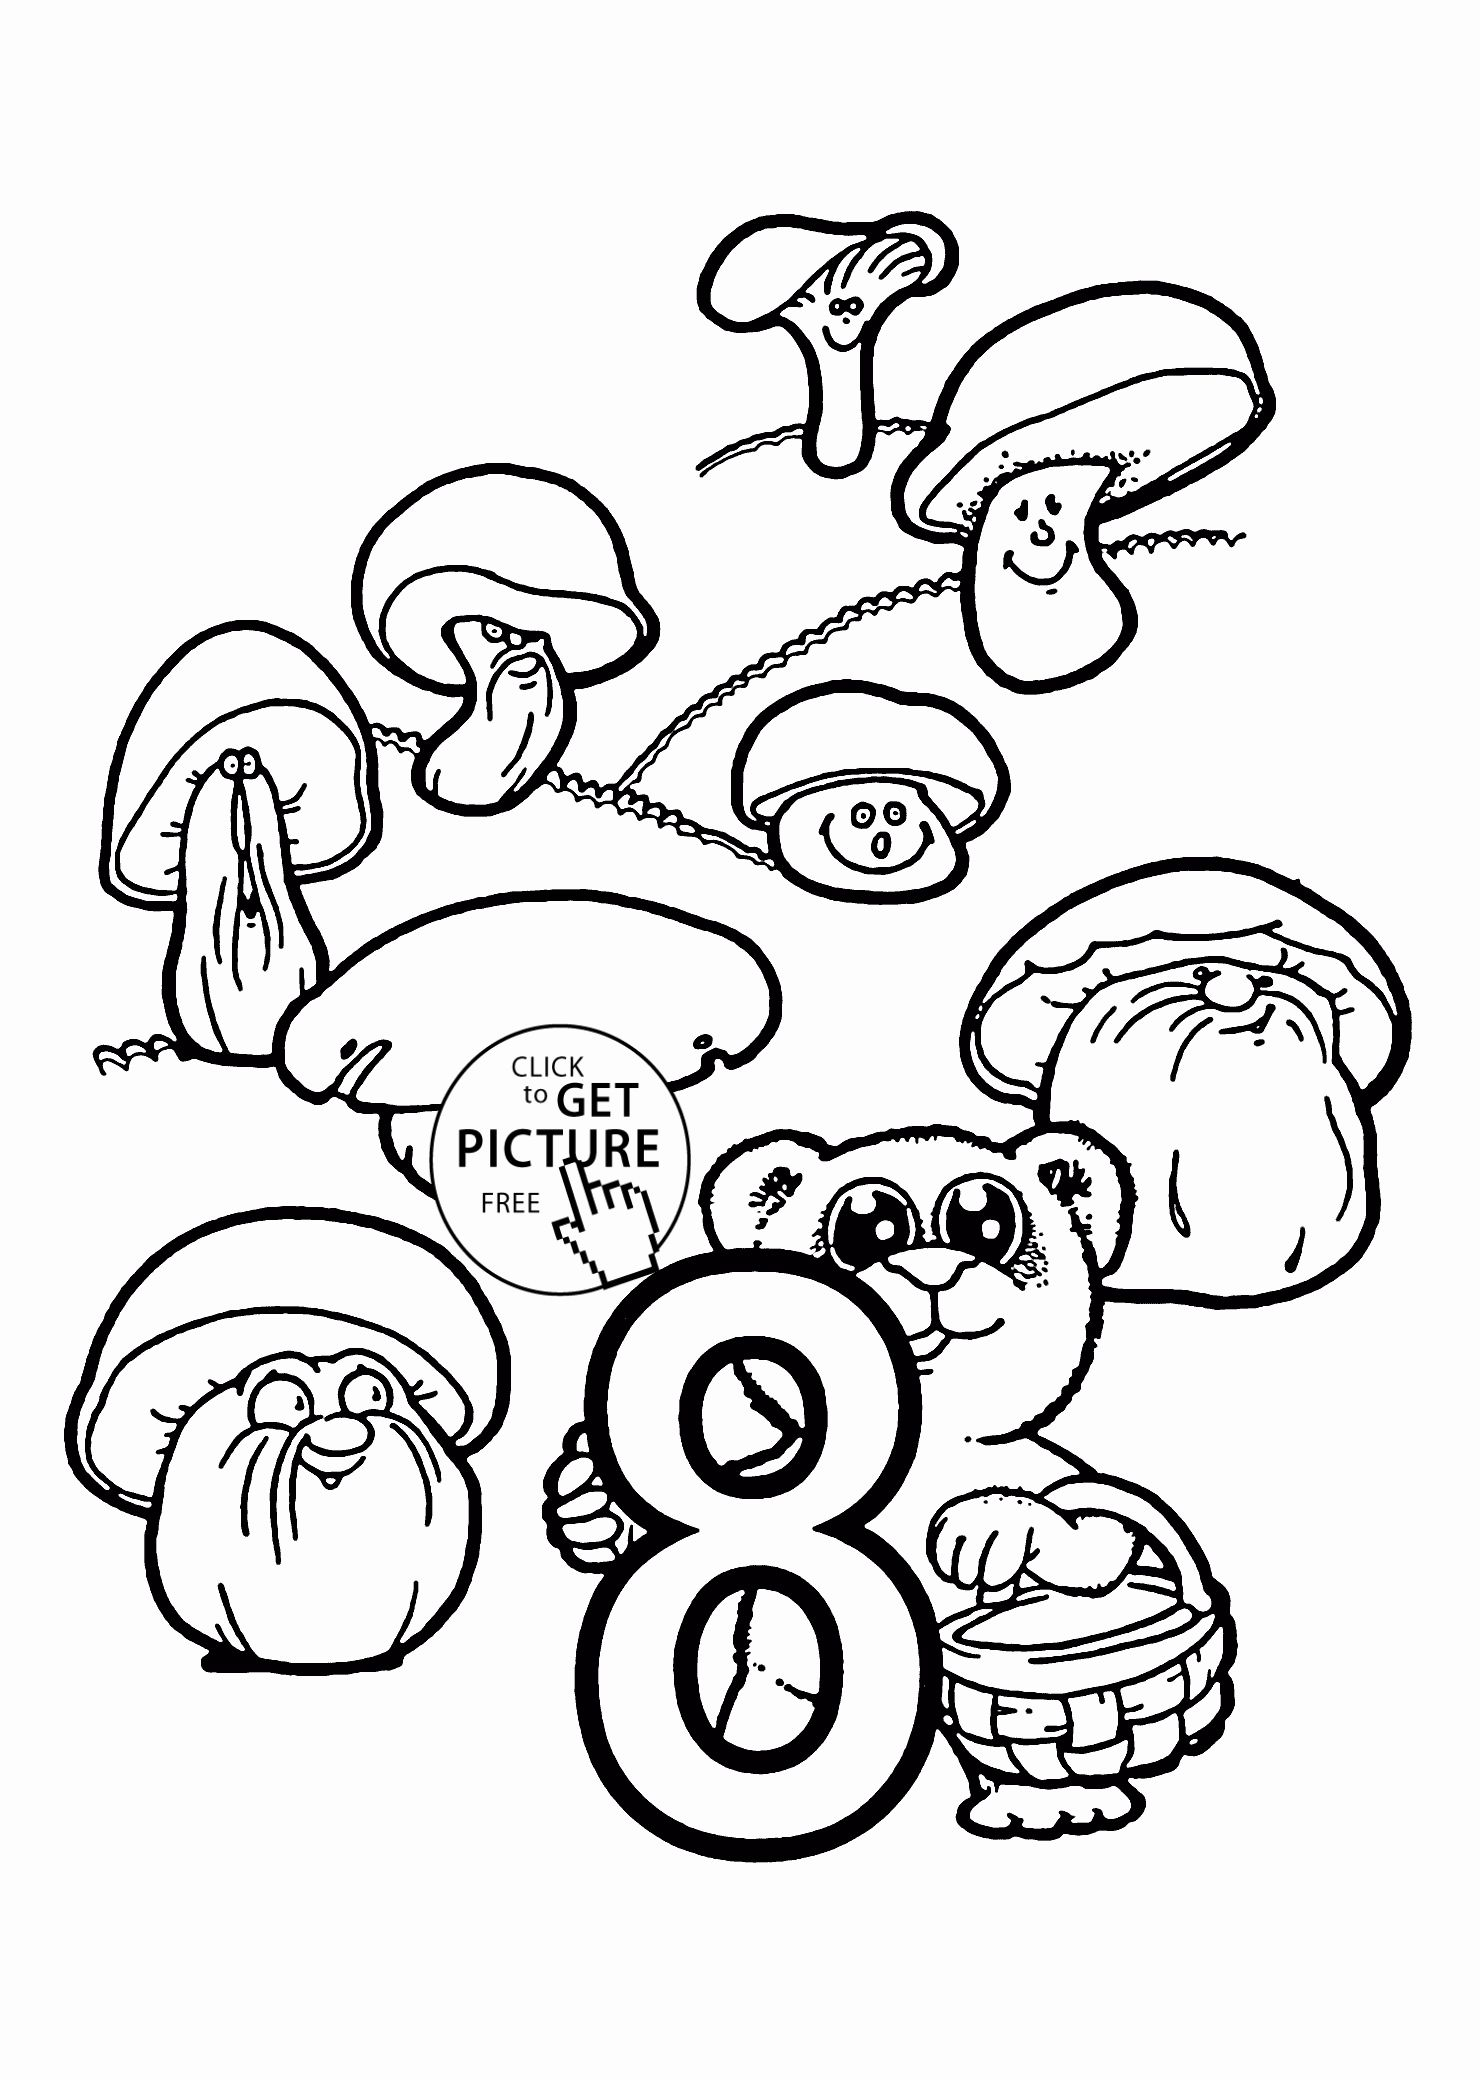 32 Number 8 Coloring Page In